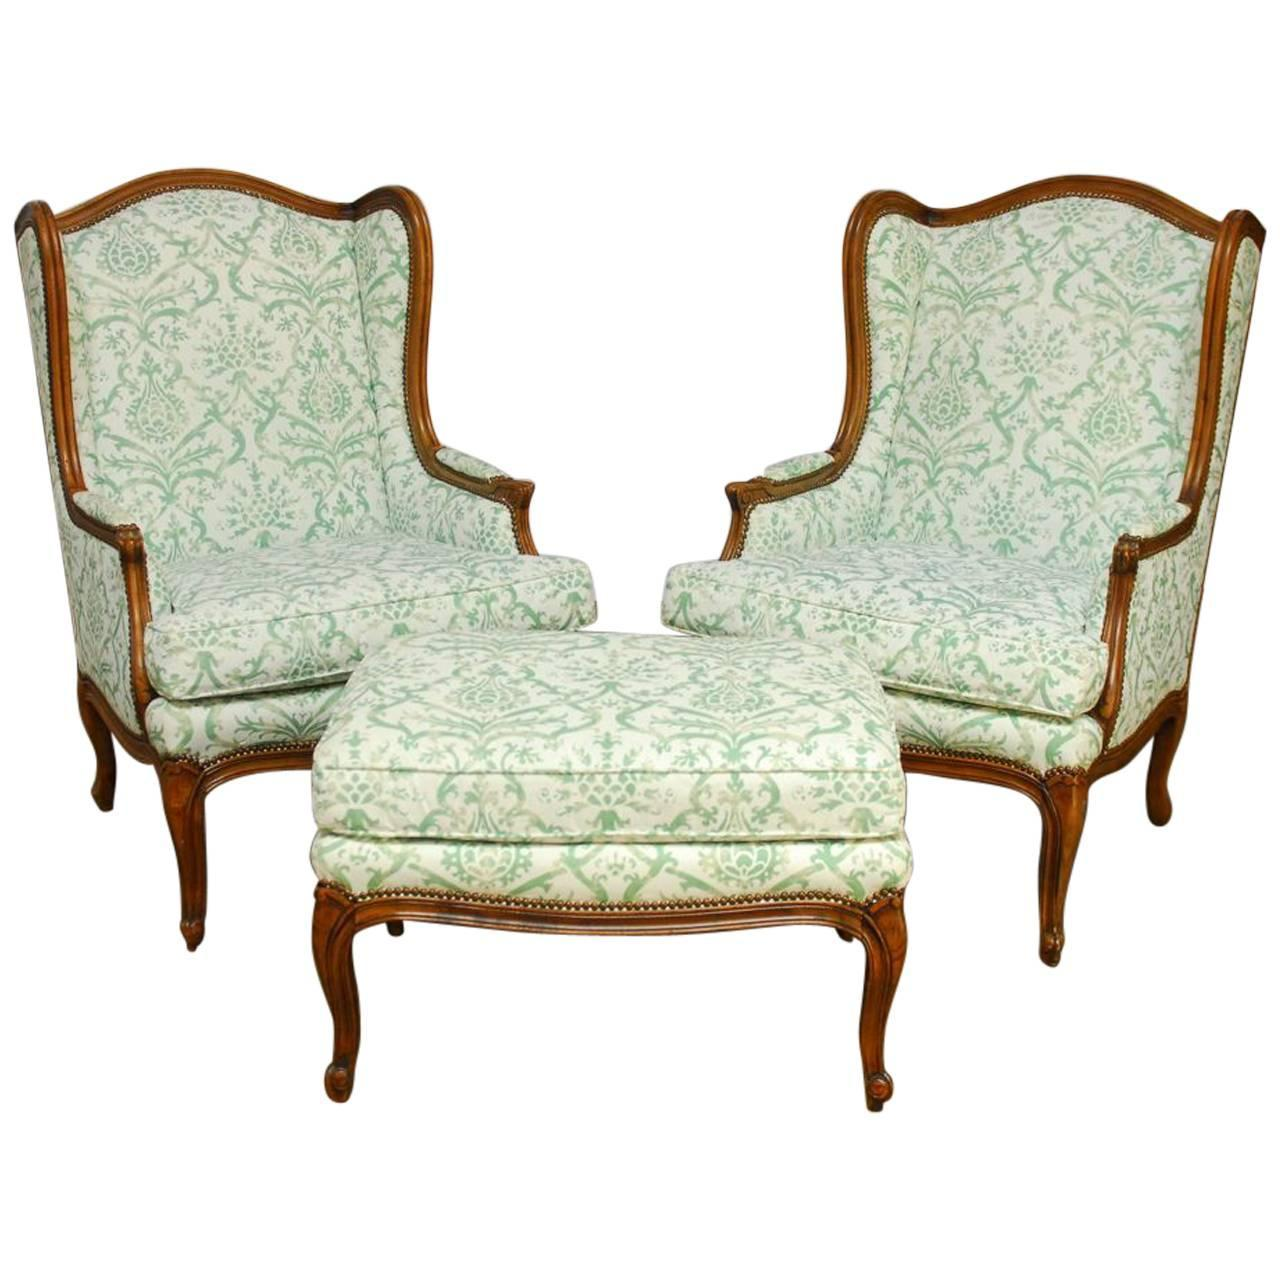 wingback chair for sale rustic accent chairs pair of baker with fortuny upholstery